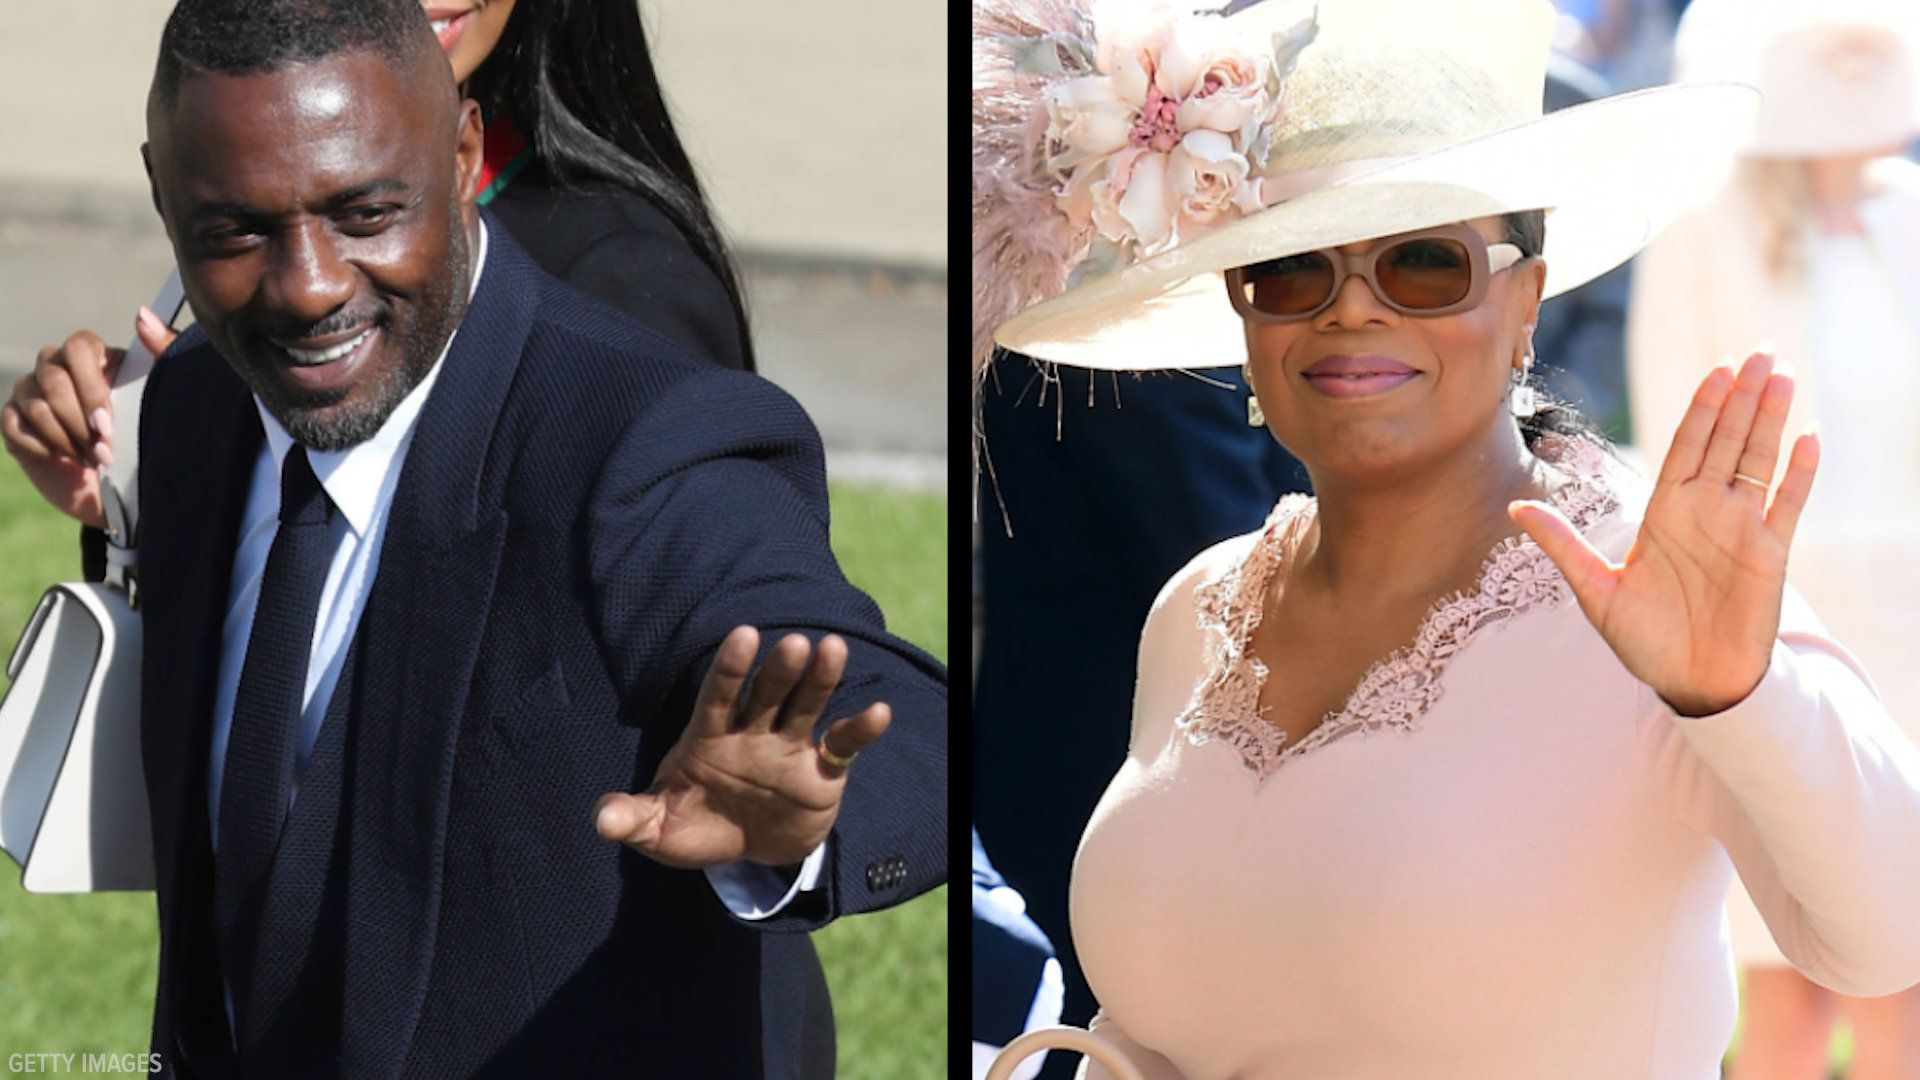 Several celebrities attended Prince Harry and Meghans wedding